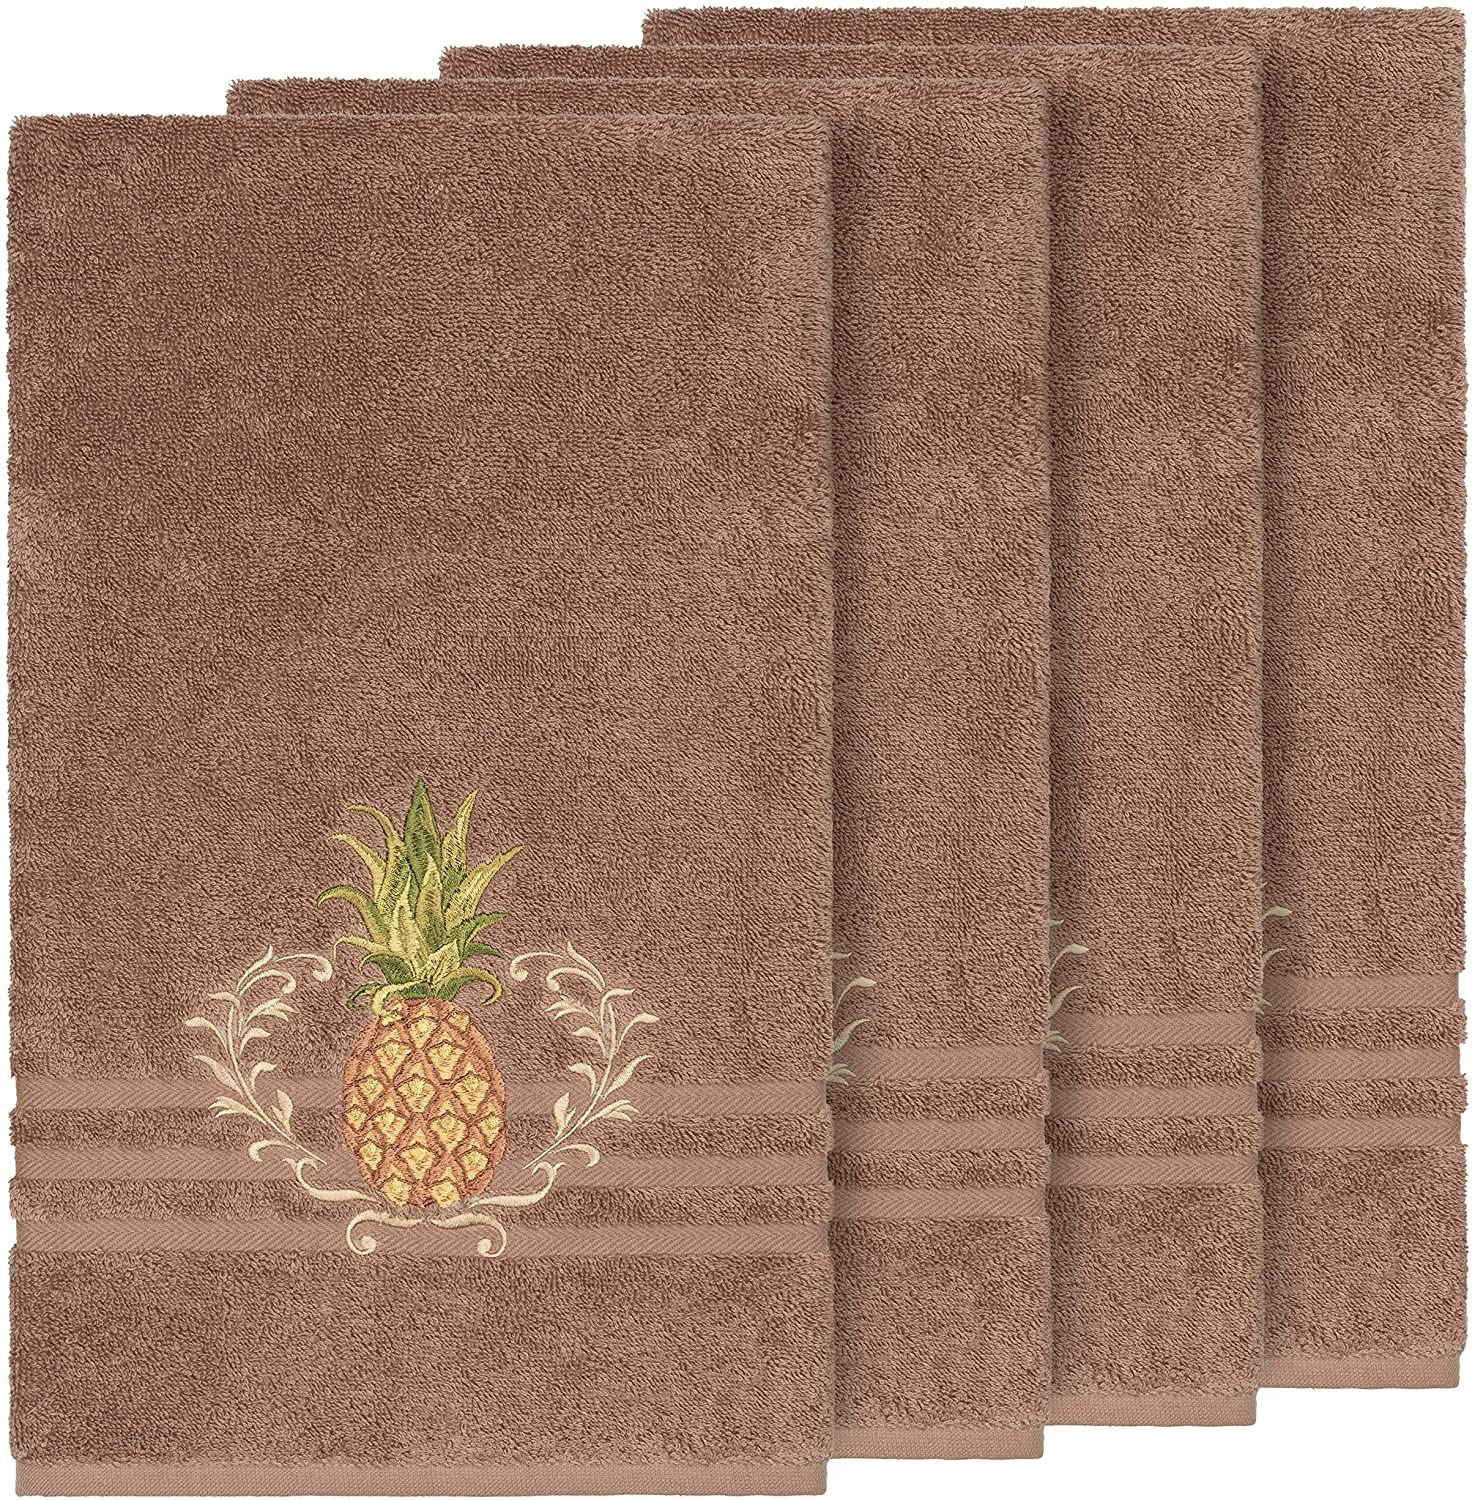 Turkish Cotton Pineapple Embroidered Latte Brown 4 Piece Bath Towel Set Cloth